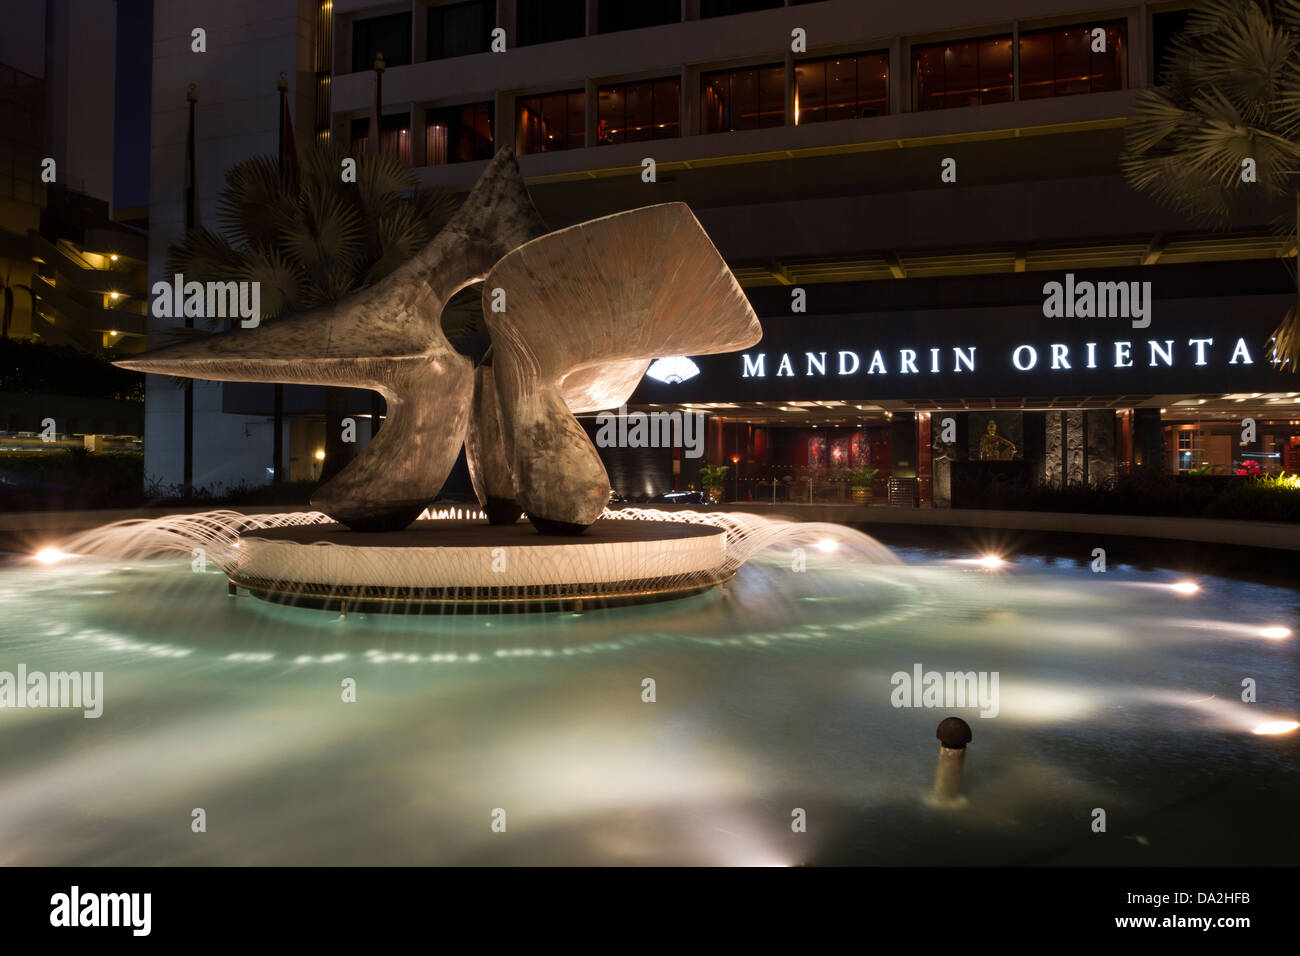 Night time view of the water fountain outside the Mandarin Oriental Hotel, Singapore, Asia - Stock Image